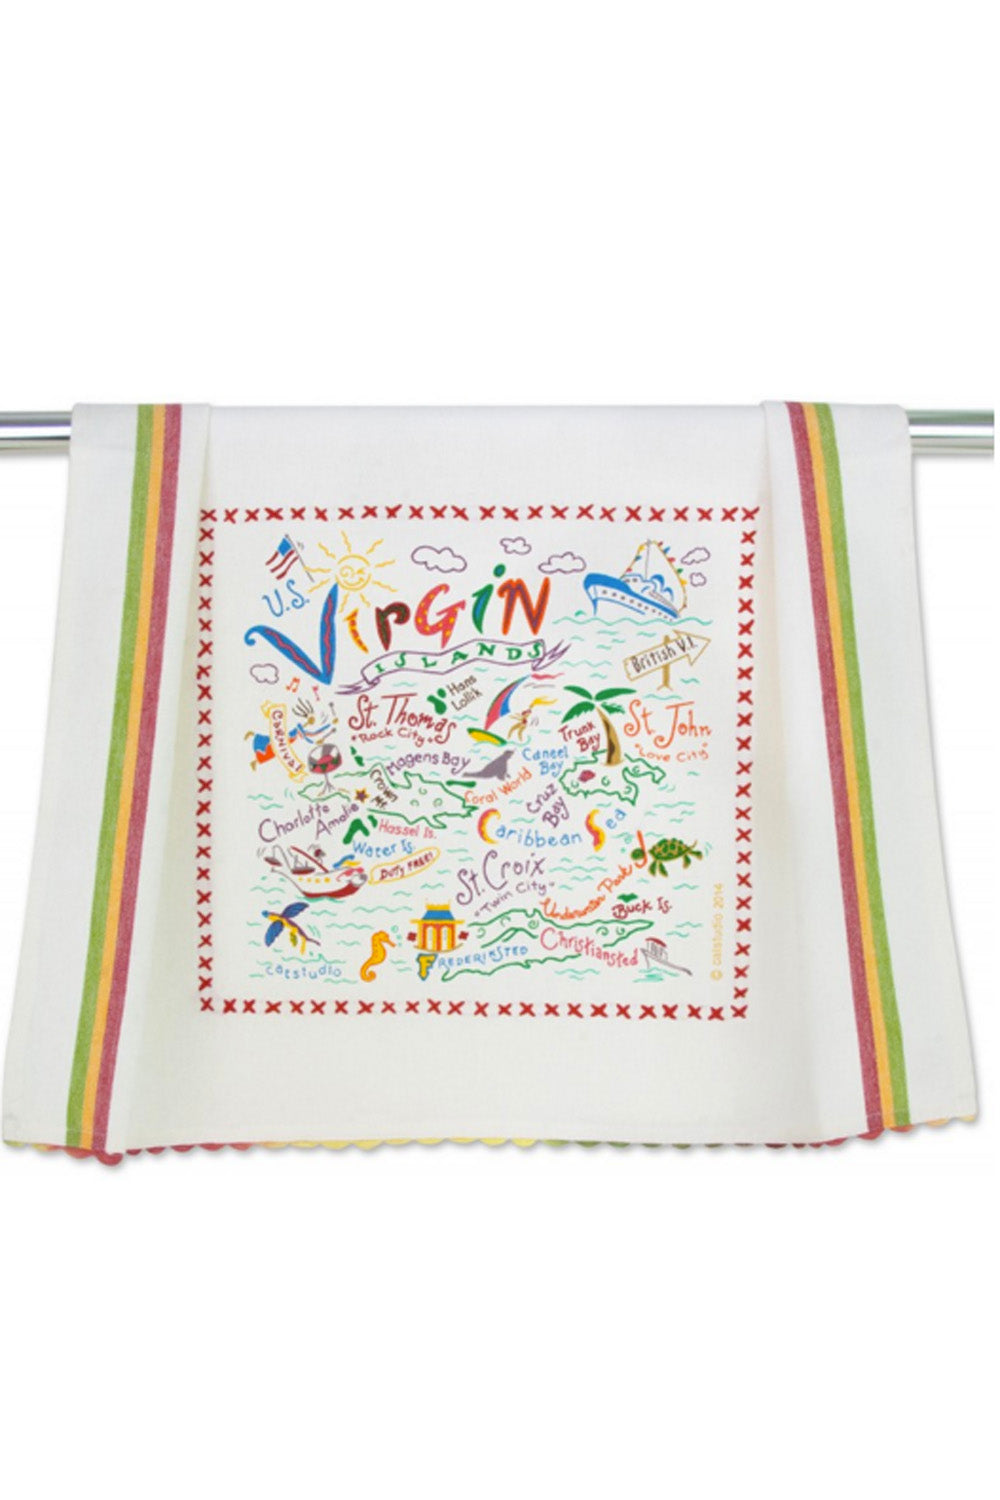 Embroidered Dish Towel - Virgin Islands